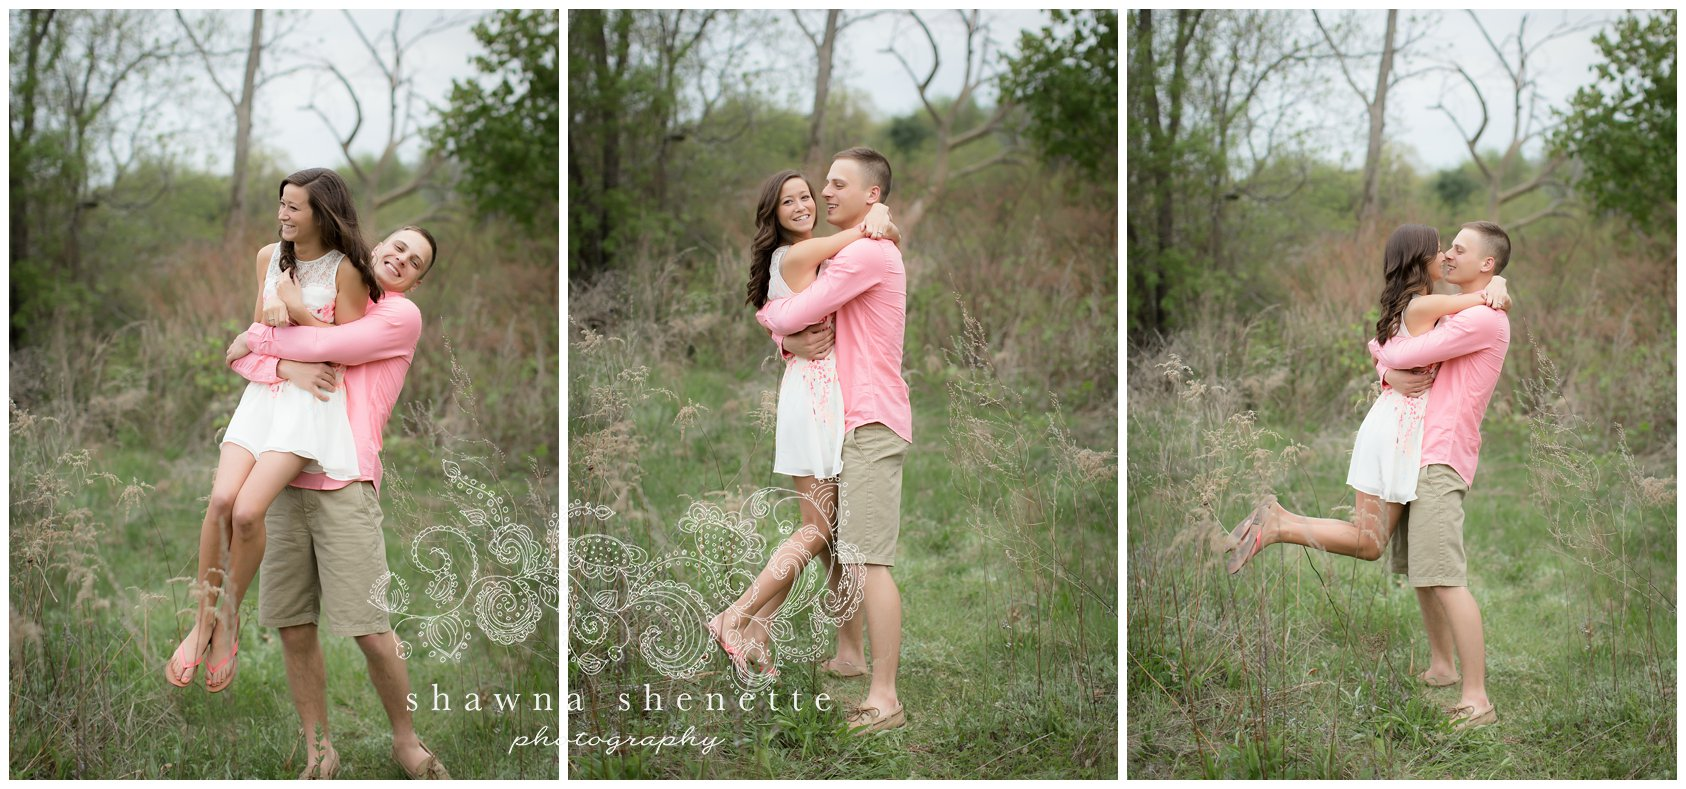 Massachusetts Engagement Photos Millbury Photographer Worcester Wedding Photos Couples Engaged Grafton Wachusett